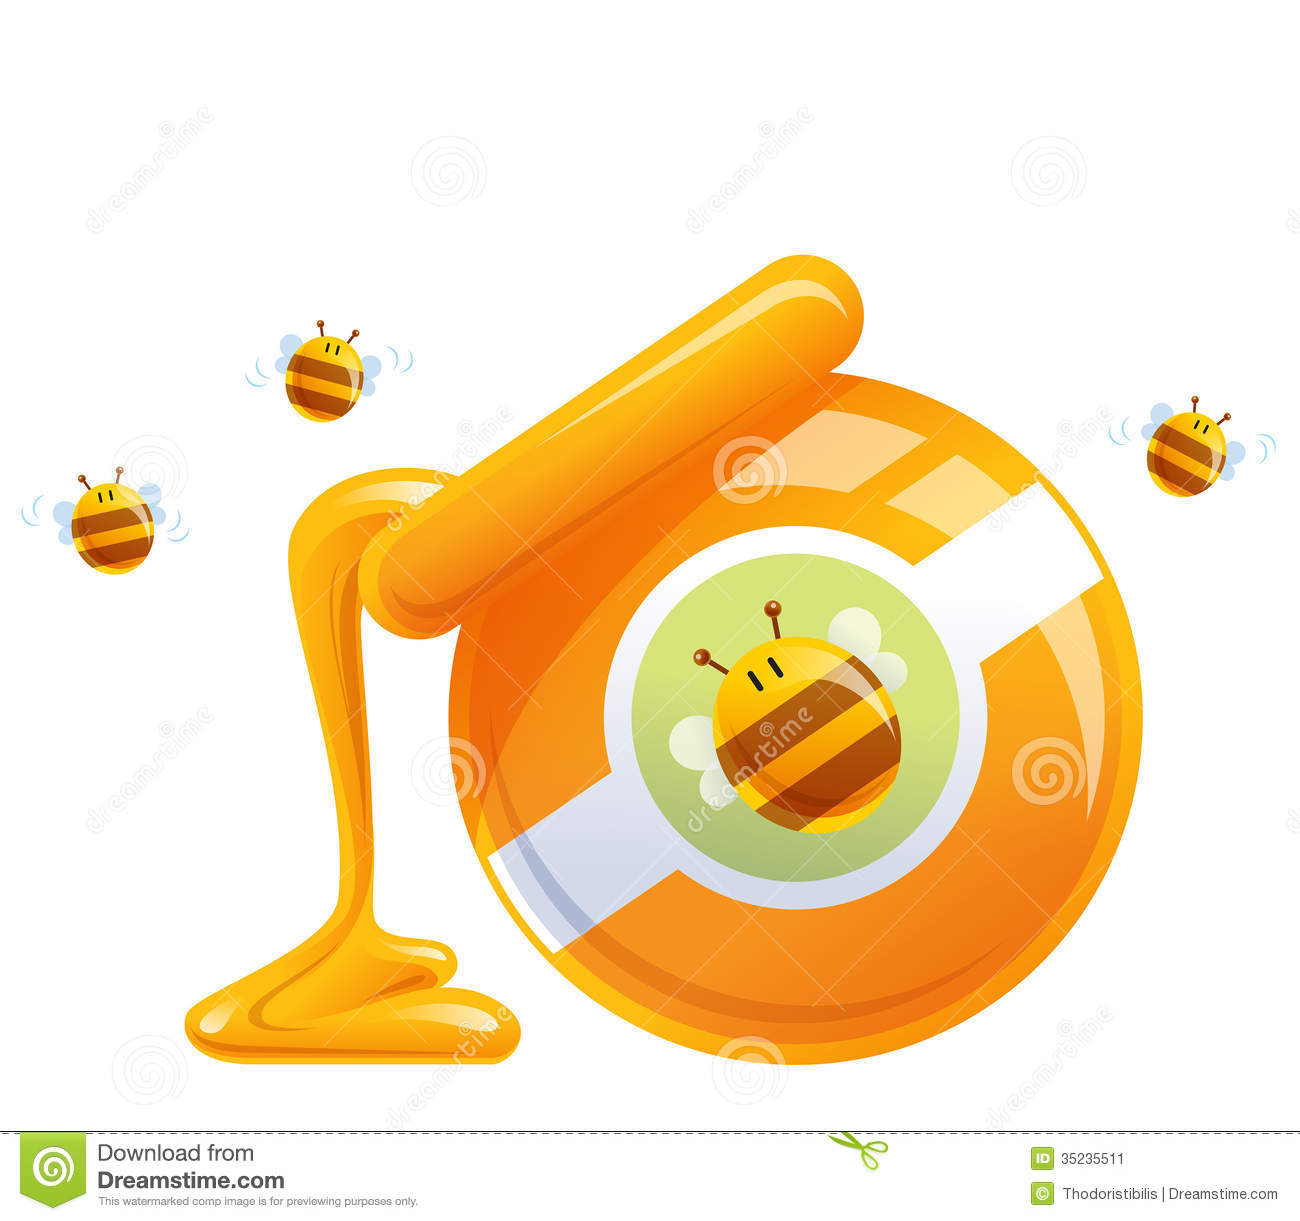 Galleries Related  Animated Bees  Bumble Bees Clip Art